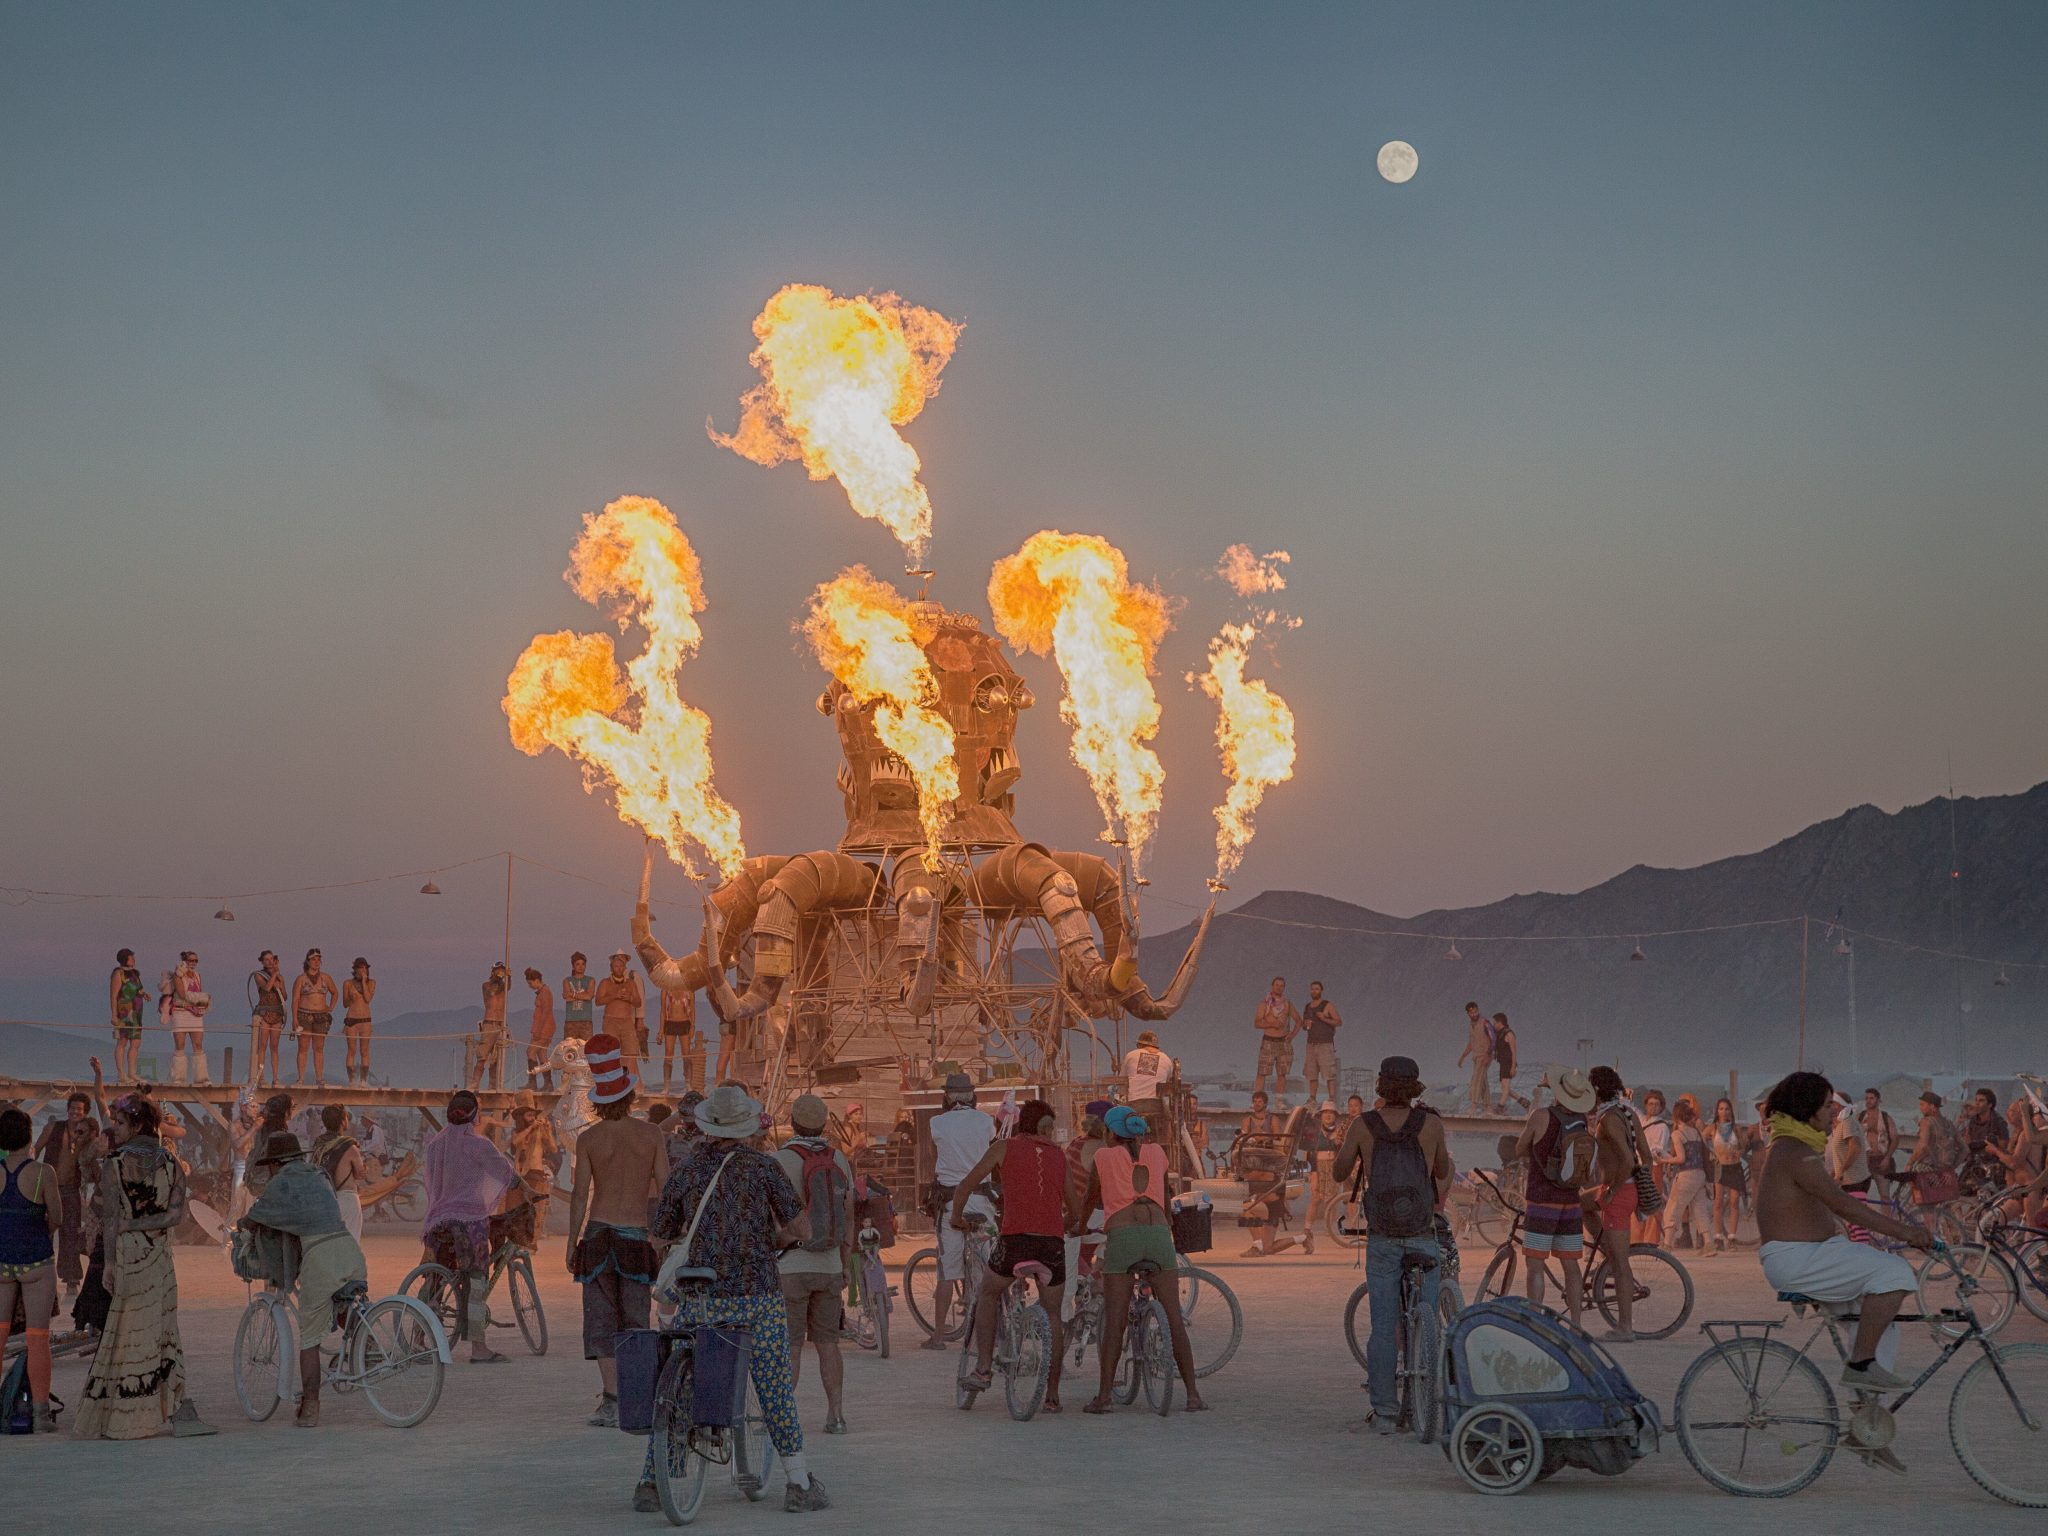 Picture courtesy of Burning Man